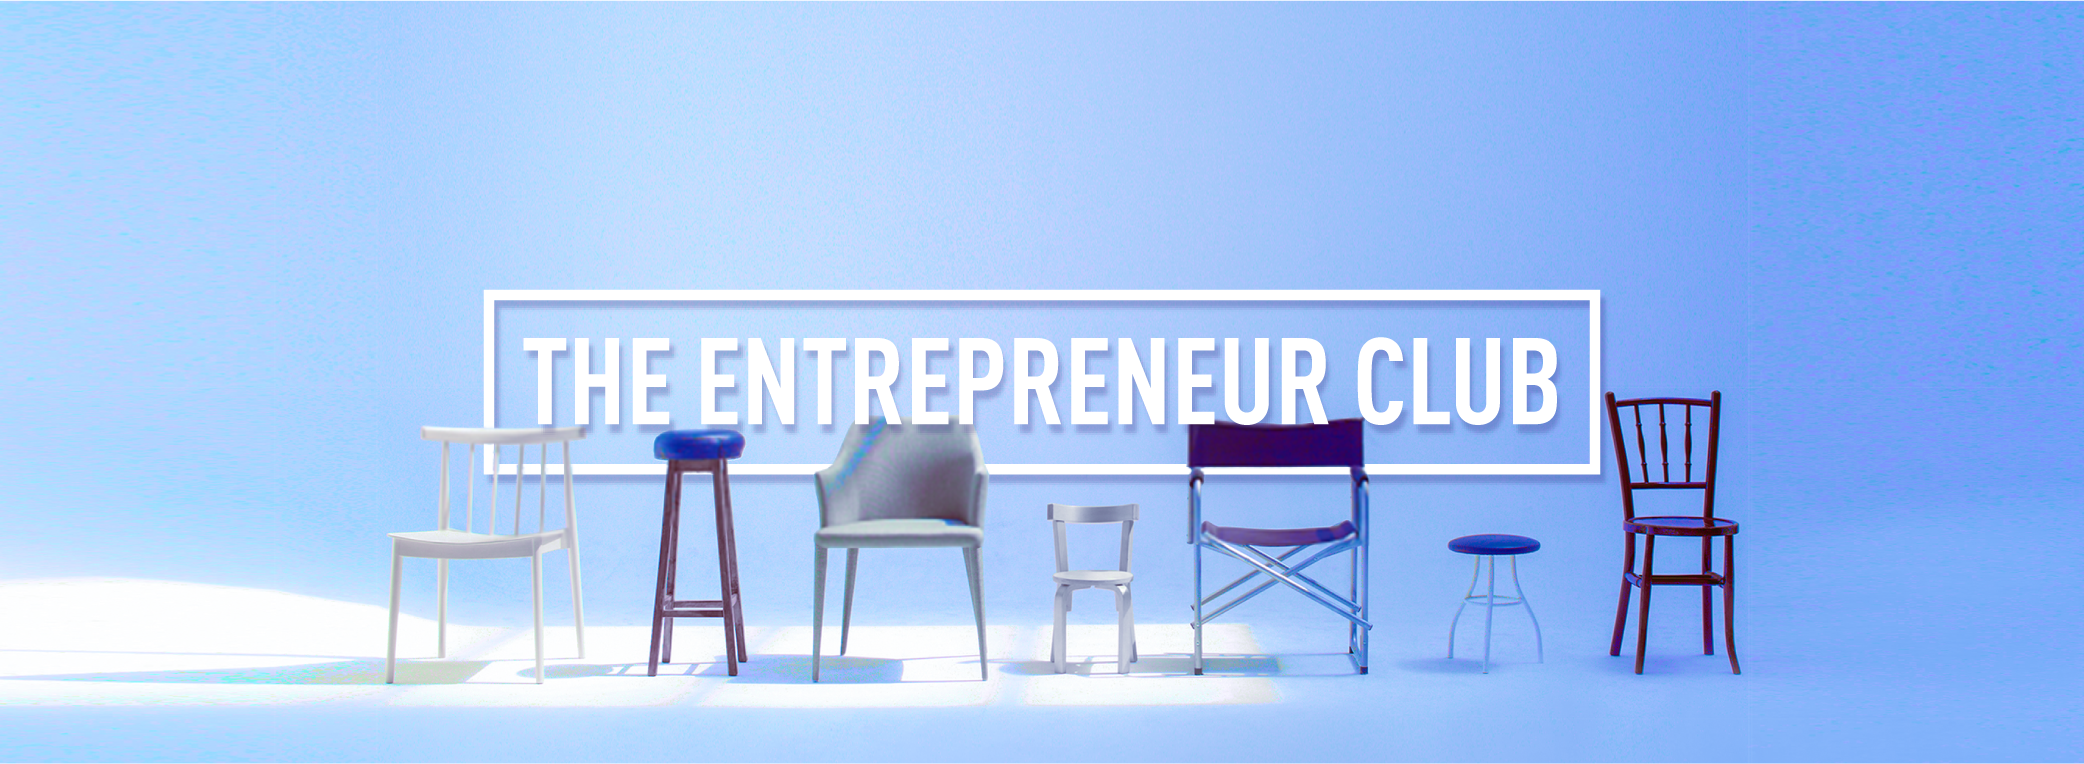 THE ENTREPRENEUR CLUB_Webpage Header